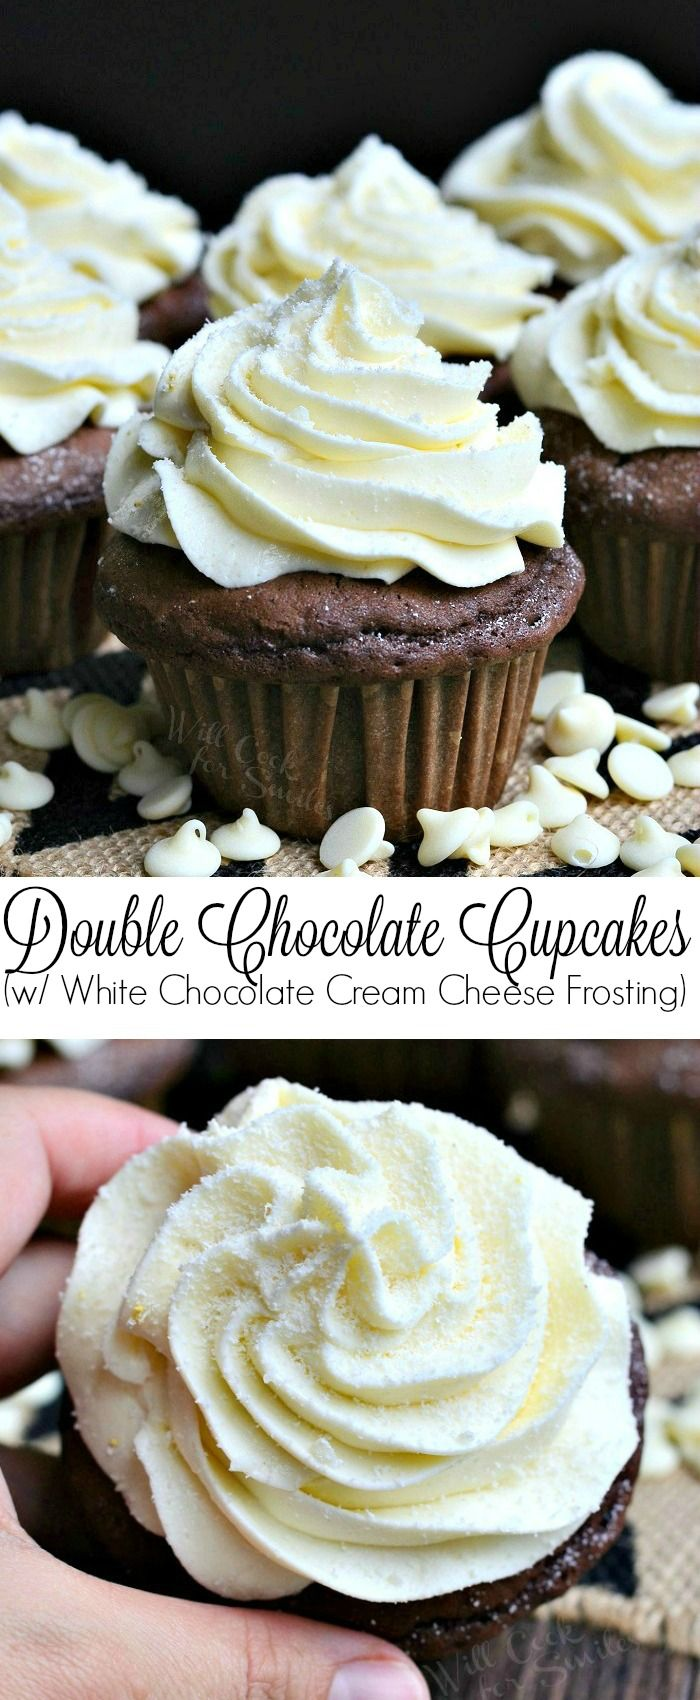 Double Chocolate Cupcakes (with White Chocolate Cream Cheese Frosting)